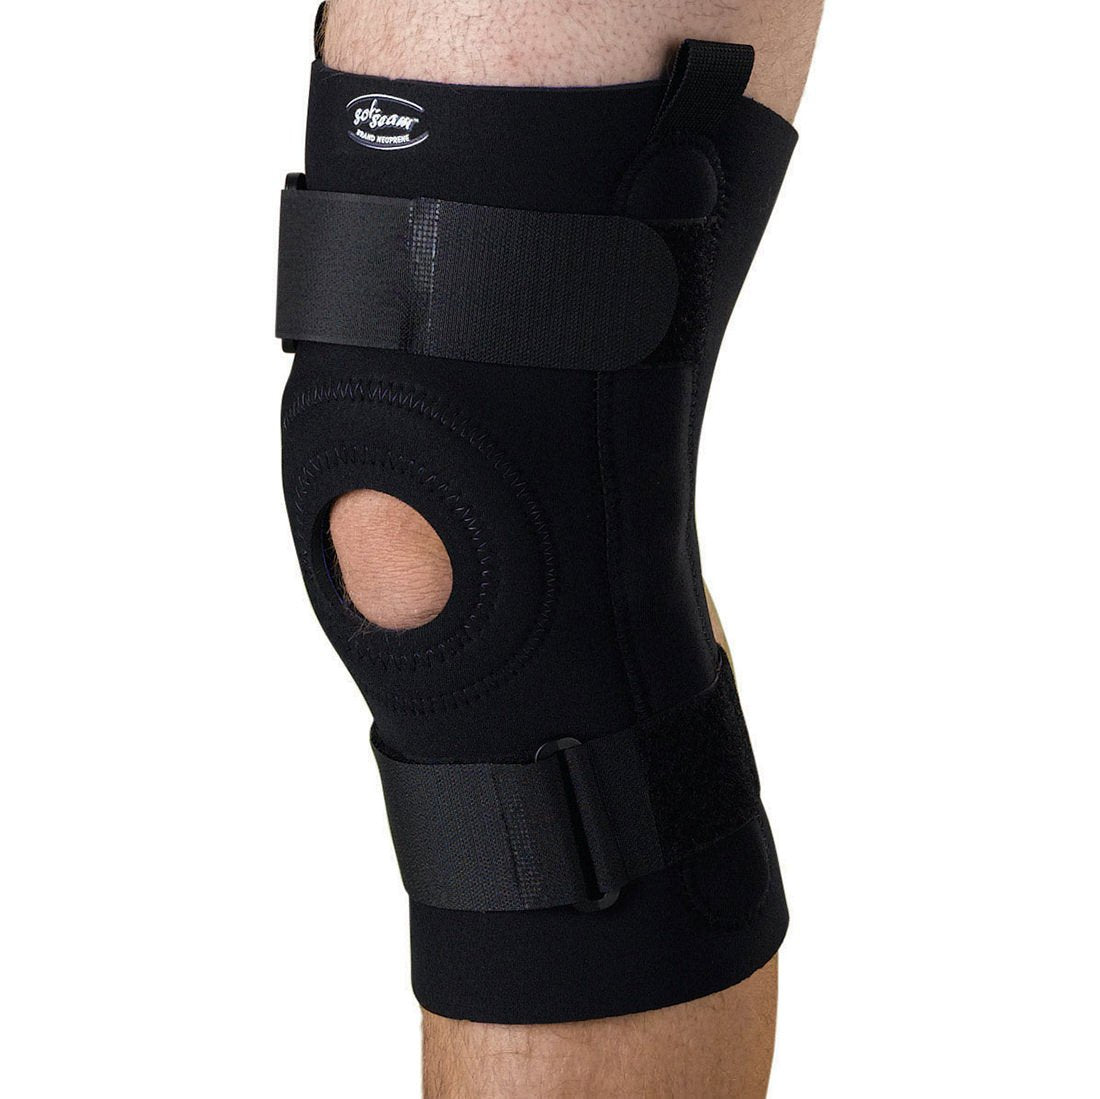 U-Shaped Hinged Knee Support